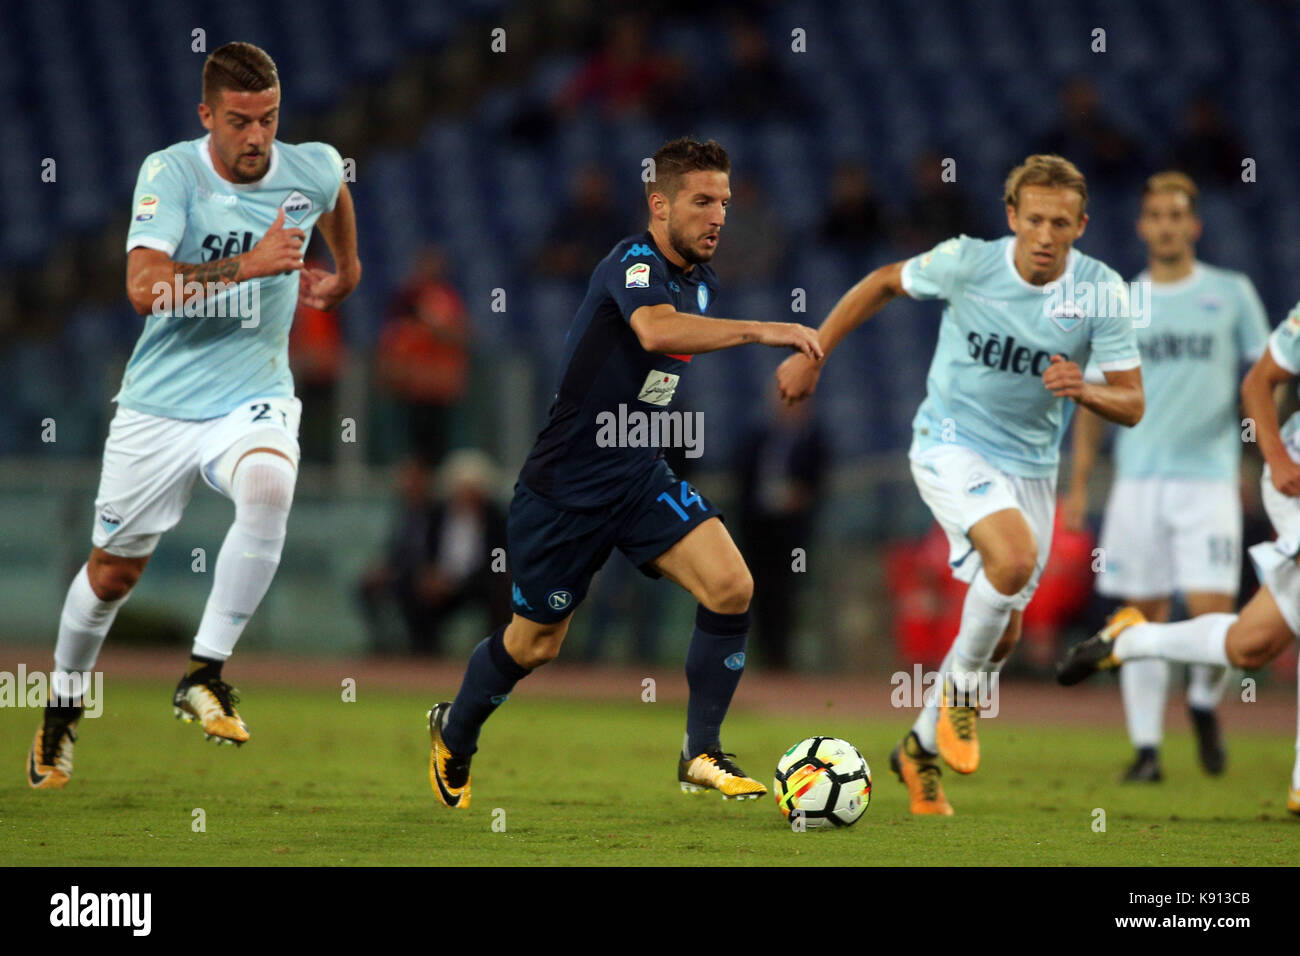 Italy, Rome, September 20, 2017:Mertens in action during the football match Serie A Lazio vs Napoli in Olimpic Stadium - Stock Image